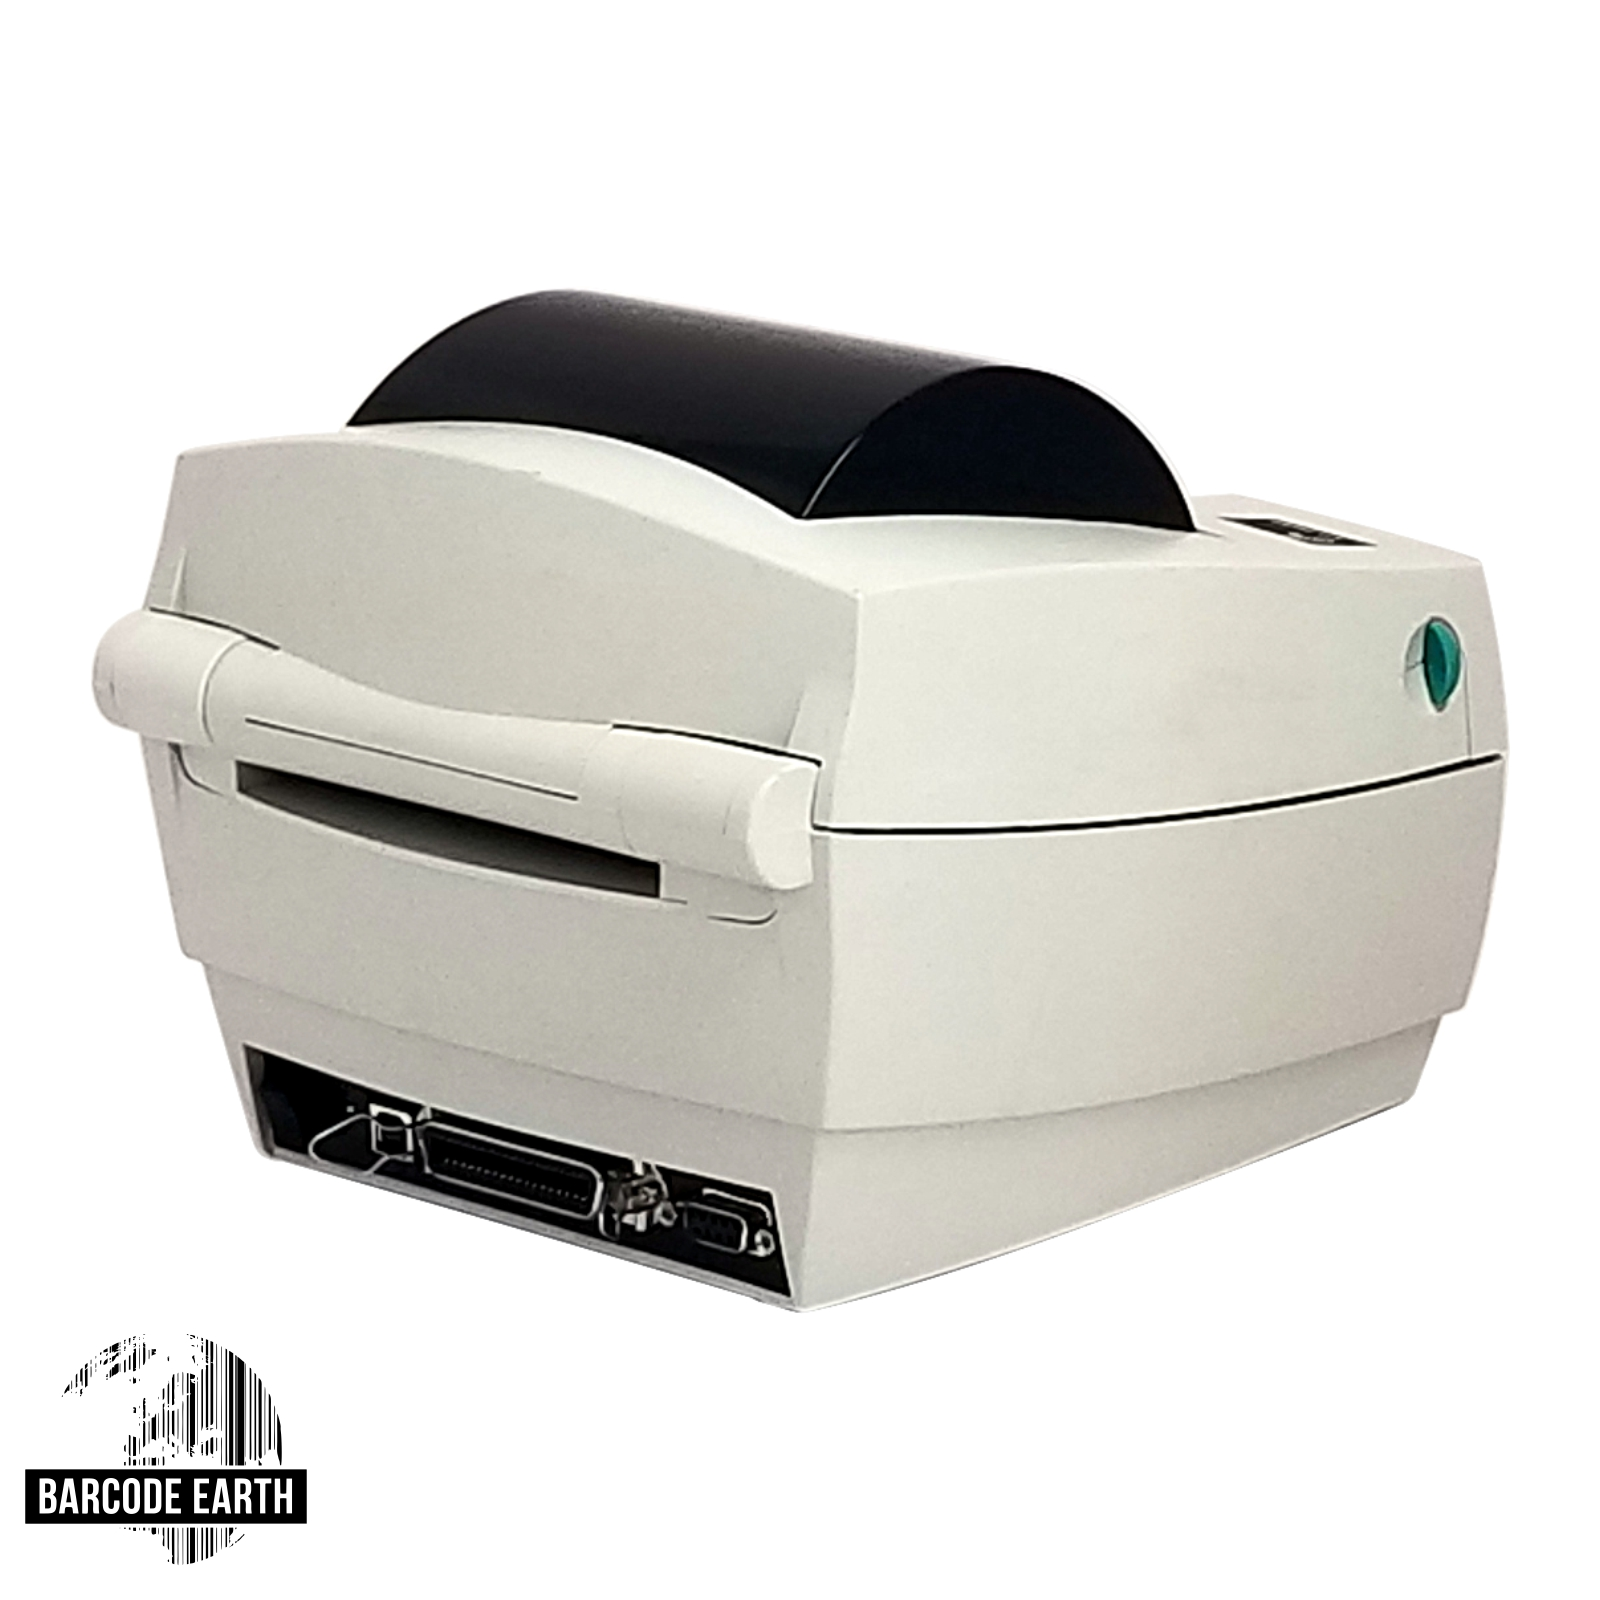 Zebra LP2844 $129 99 Thermal Printer FBA Amazon Label Printer Bundle